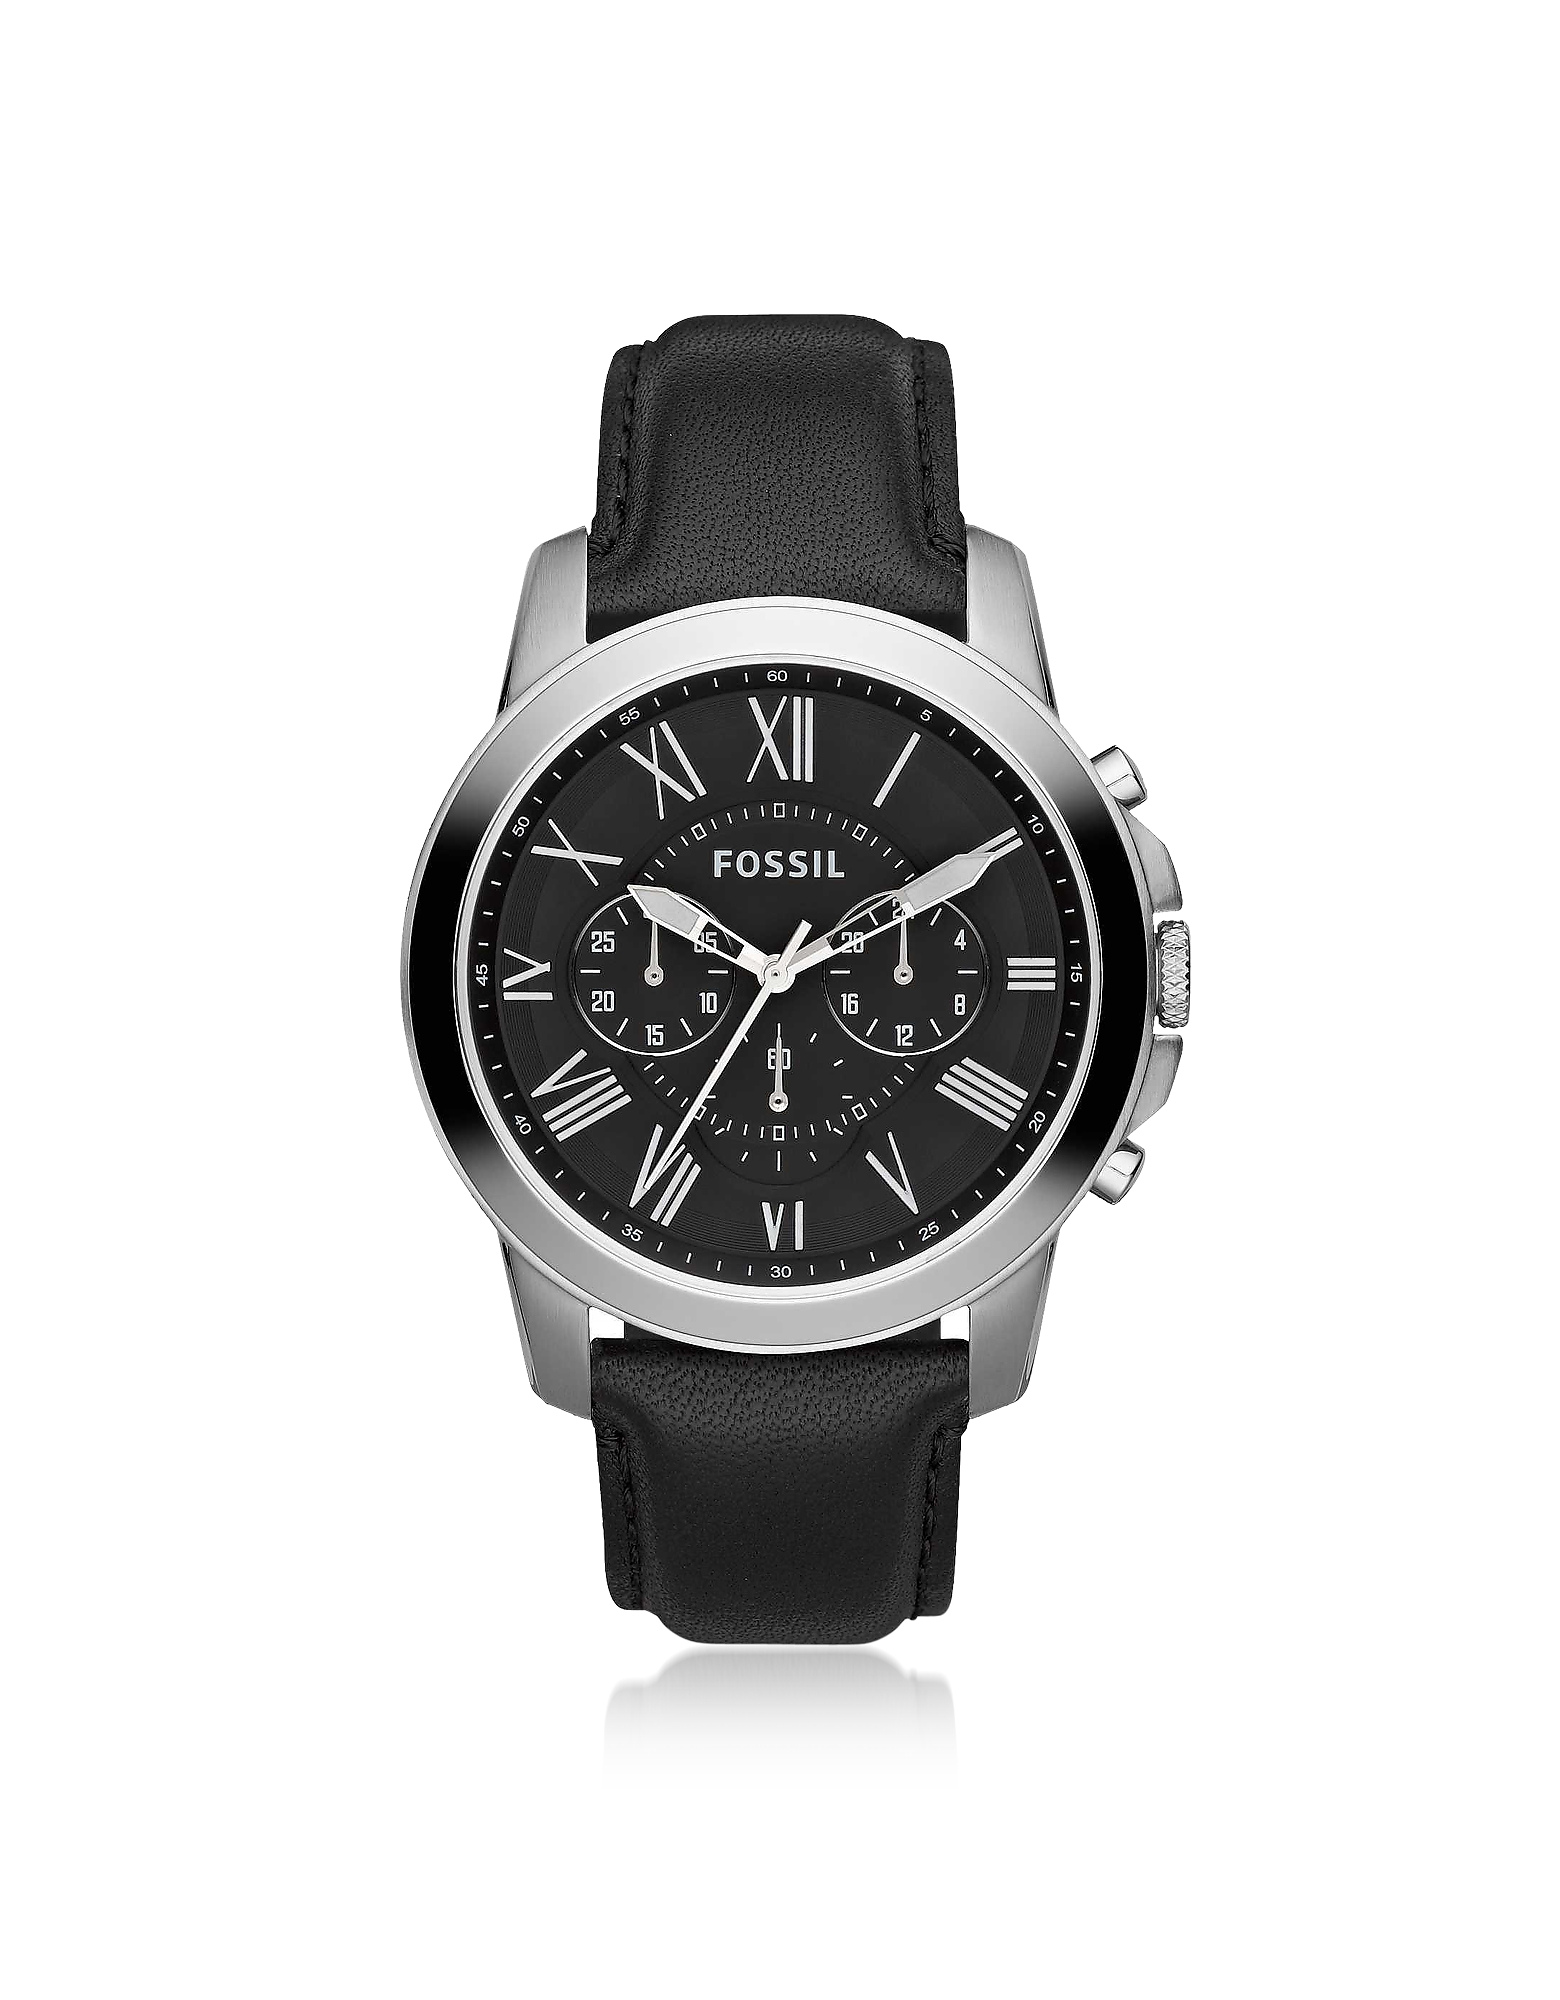 Fossil Men's Watches, Grant Chronograph Black Leather Men's Watch